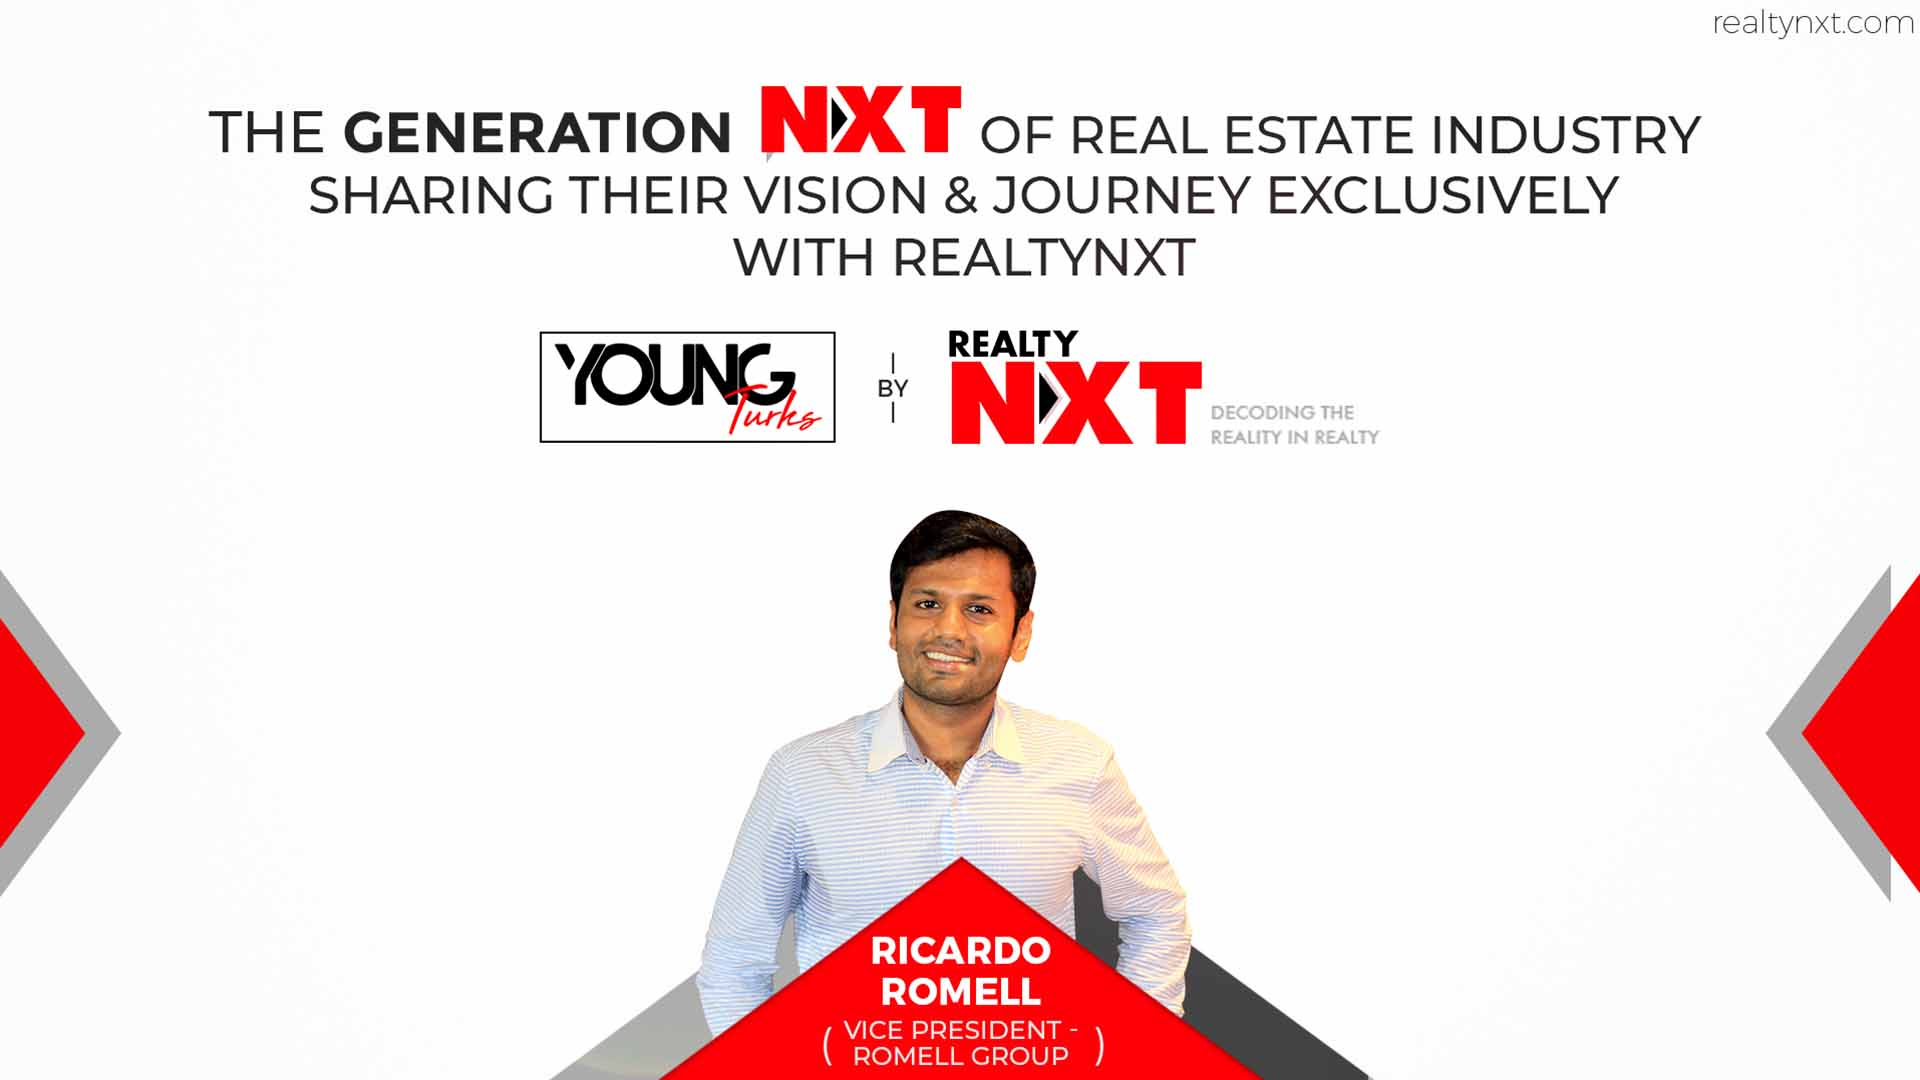 Young Turks - Featuring Ricardo Romell of Romell Group